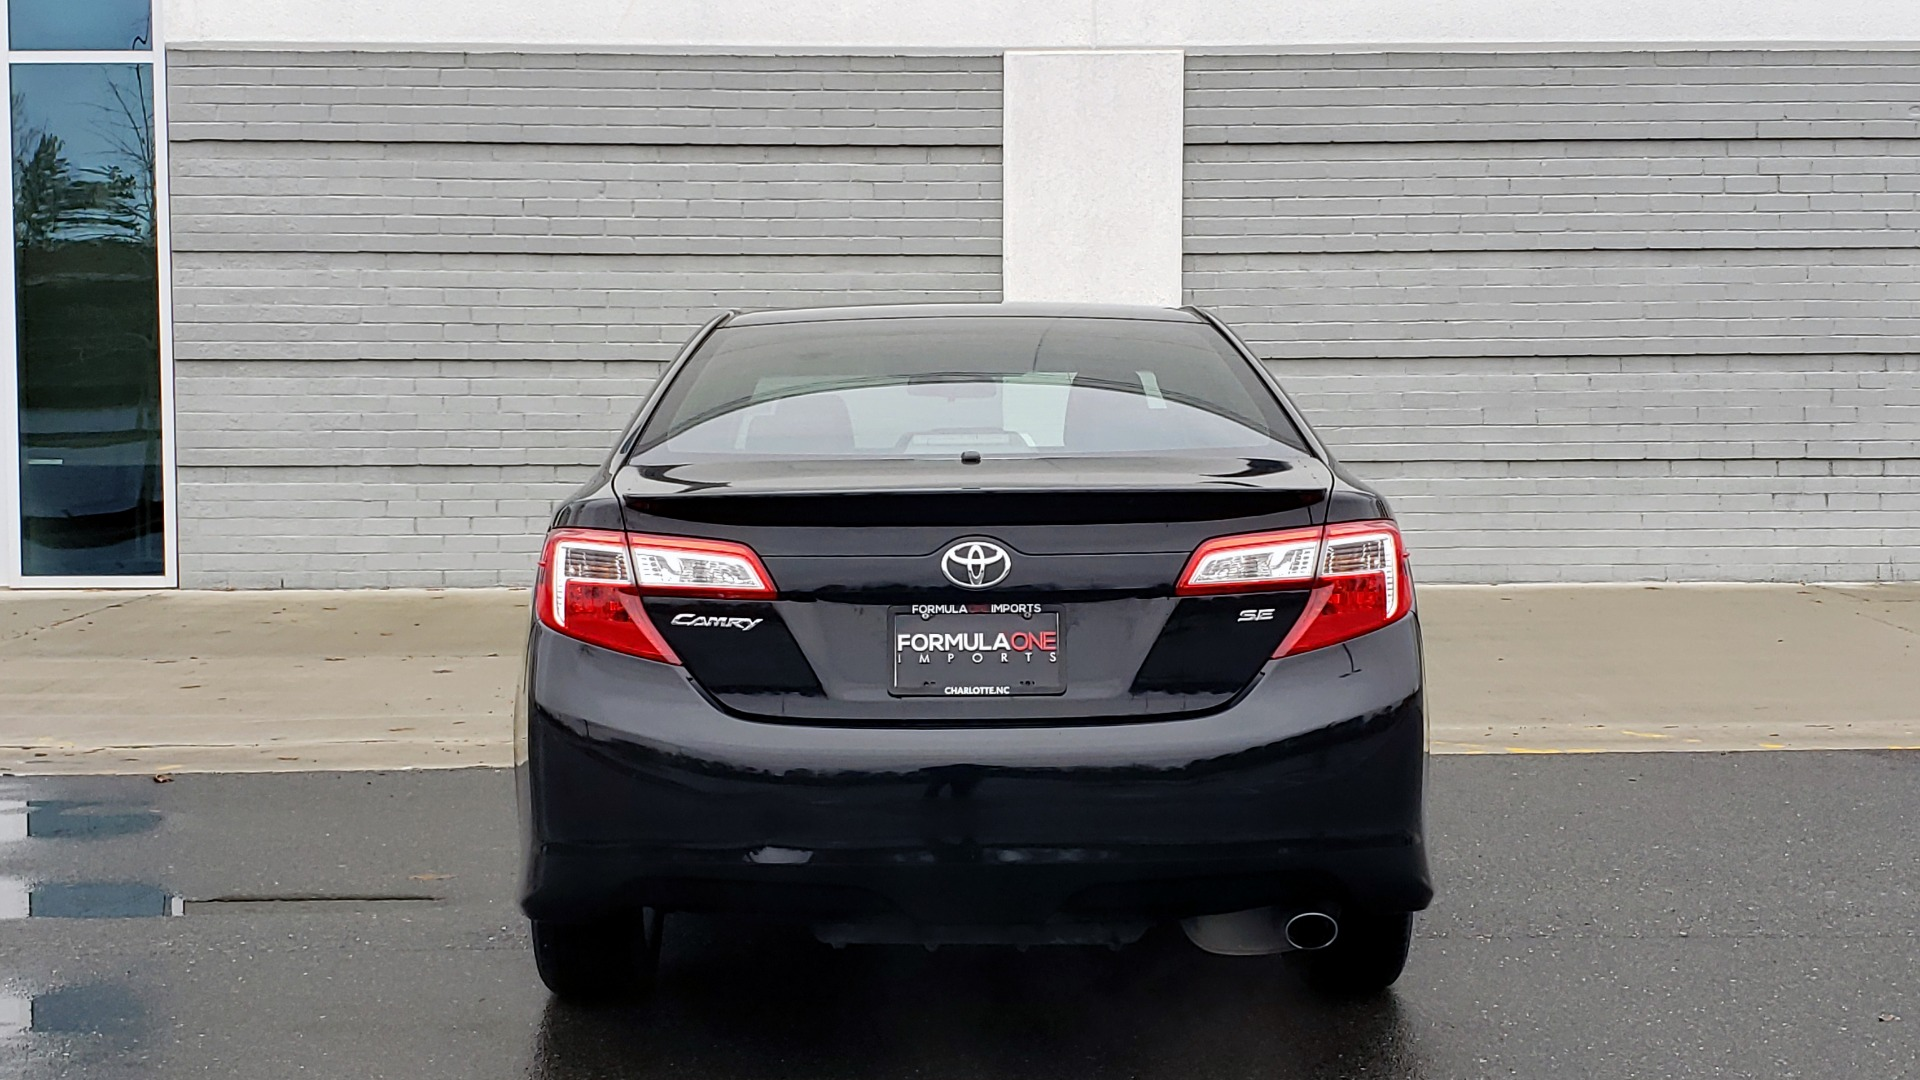 Used 2014 Toyota CAMRY SE SEDAN / 2.5L 4-CYL / 6-SPD AUTO / 17IN ALLOY WHEELS for sale $10,499 at Formula Imports in Charlotte NC 28227 24